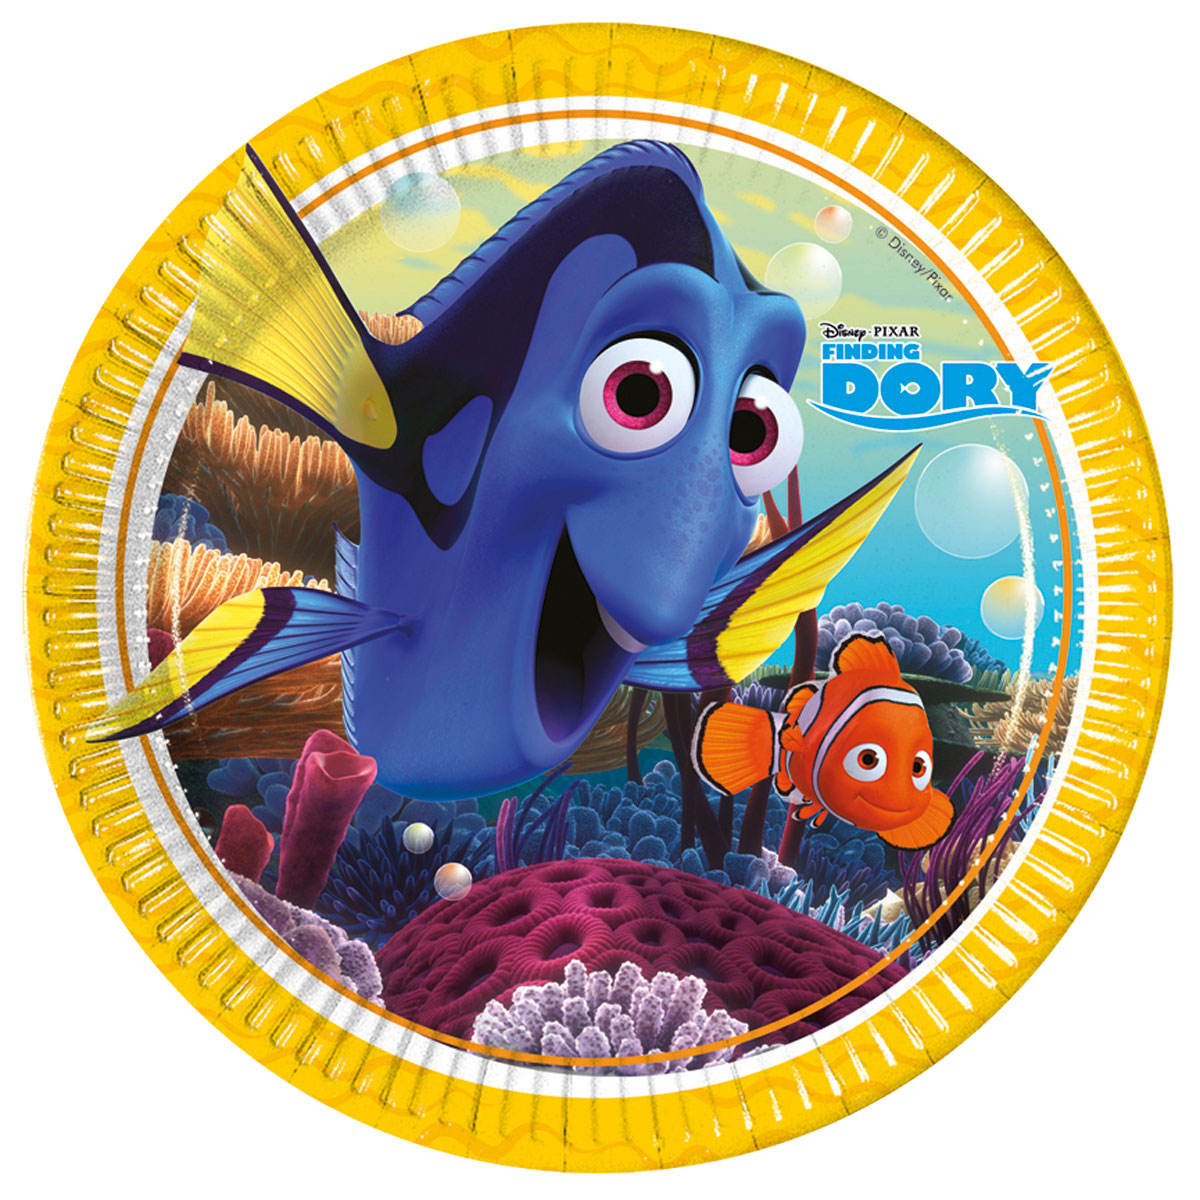 Bord Finding Dory